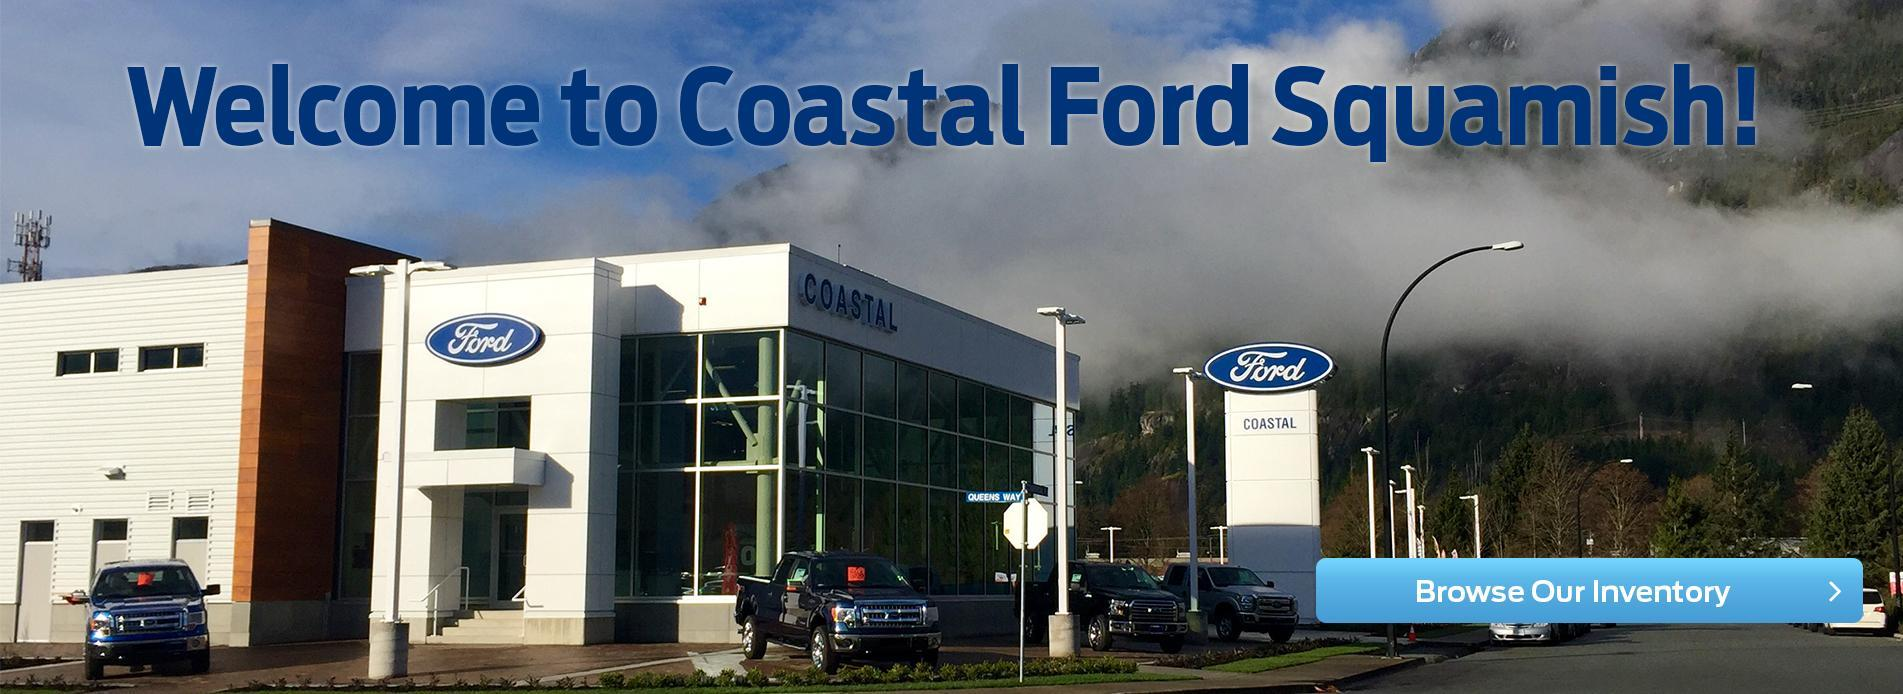 Welcome to Coastal Ford Squamish